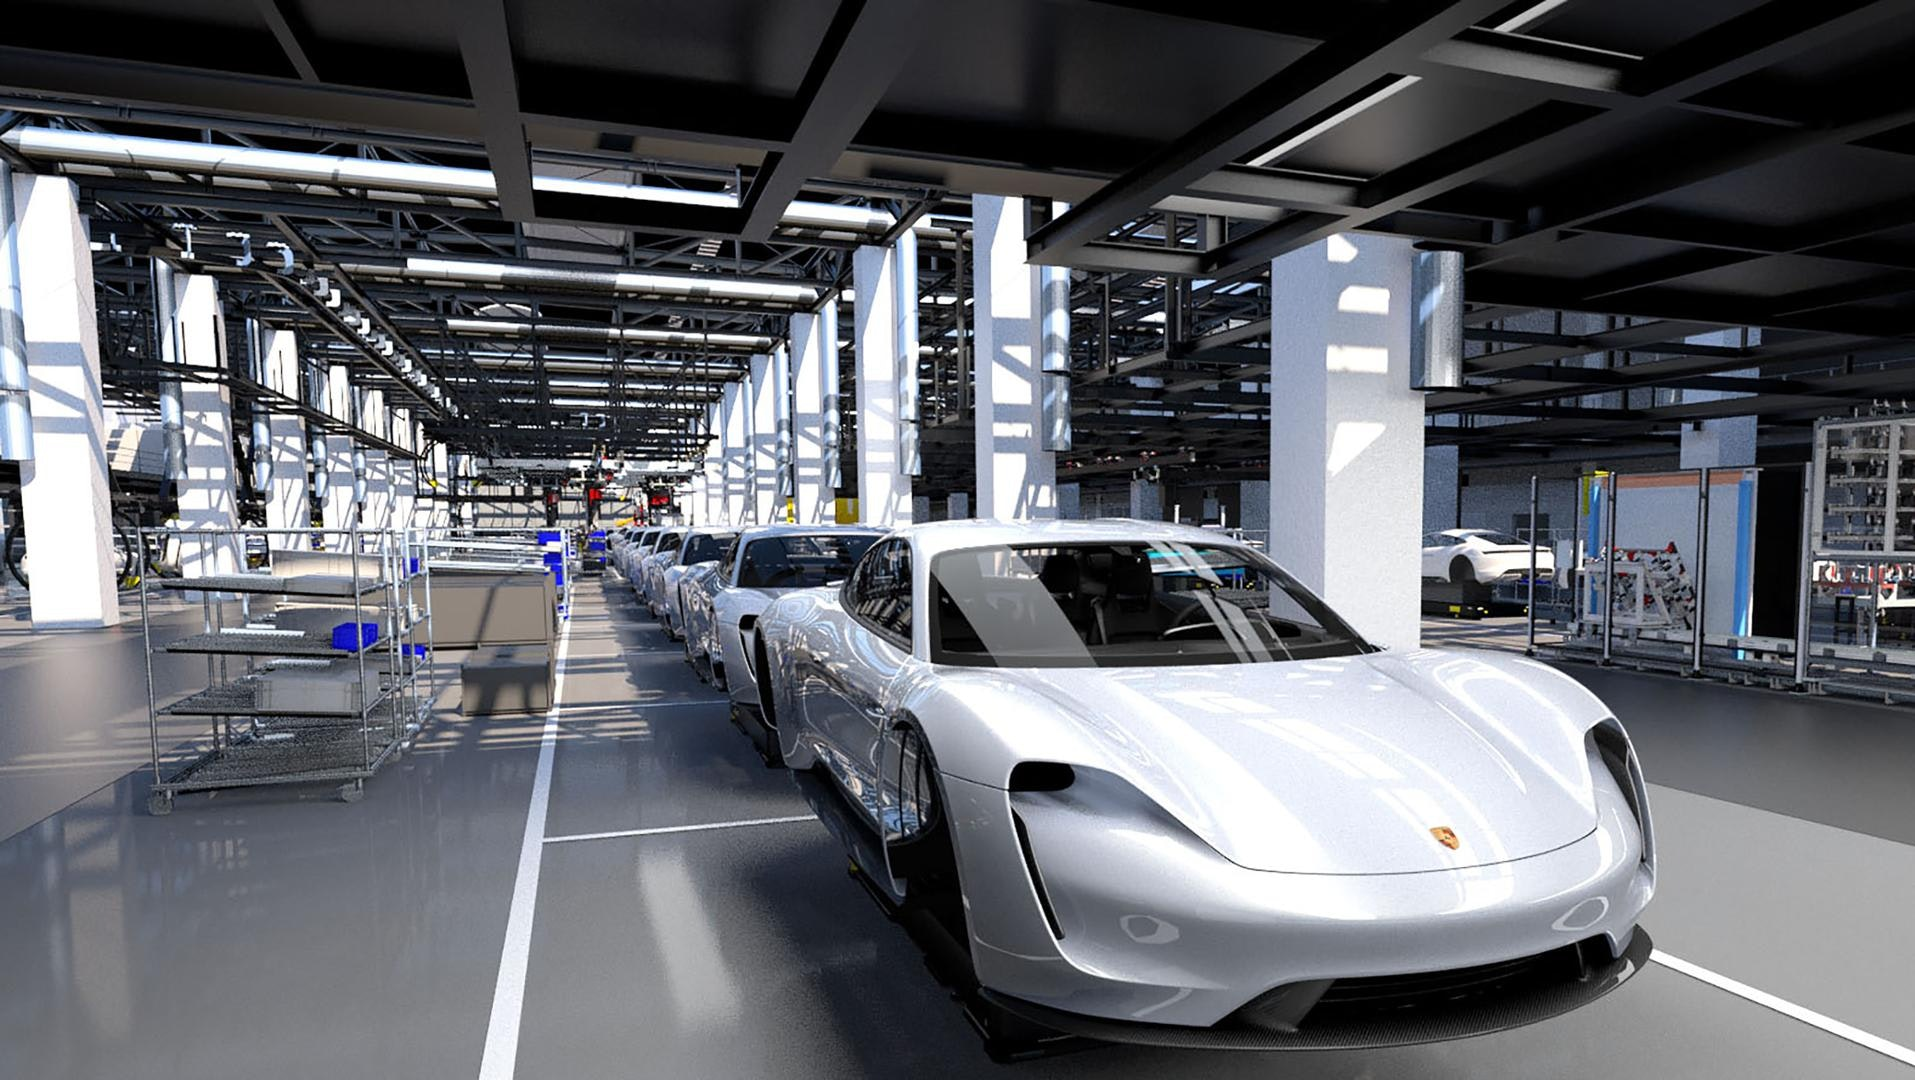 2020 Porsche Taycan Price Specs And Release Date Carwow